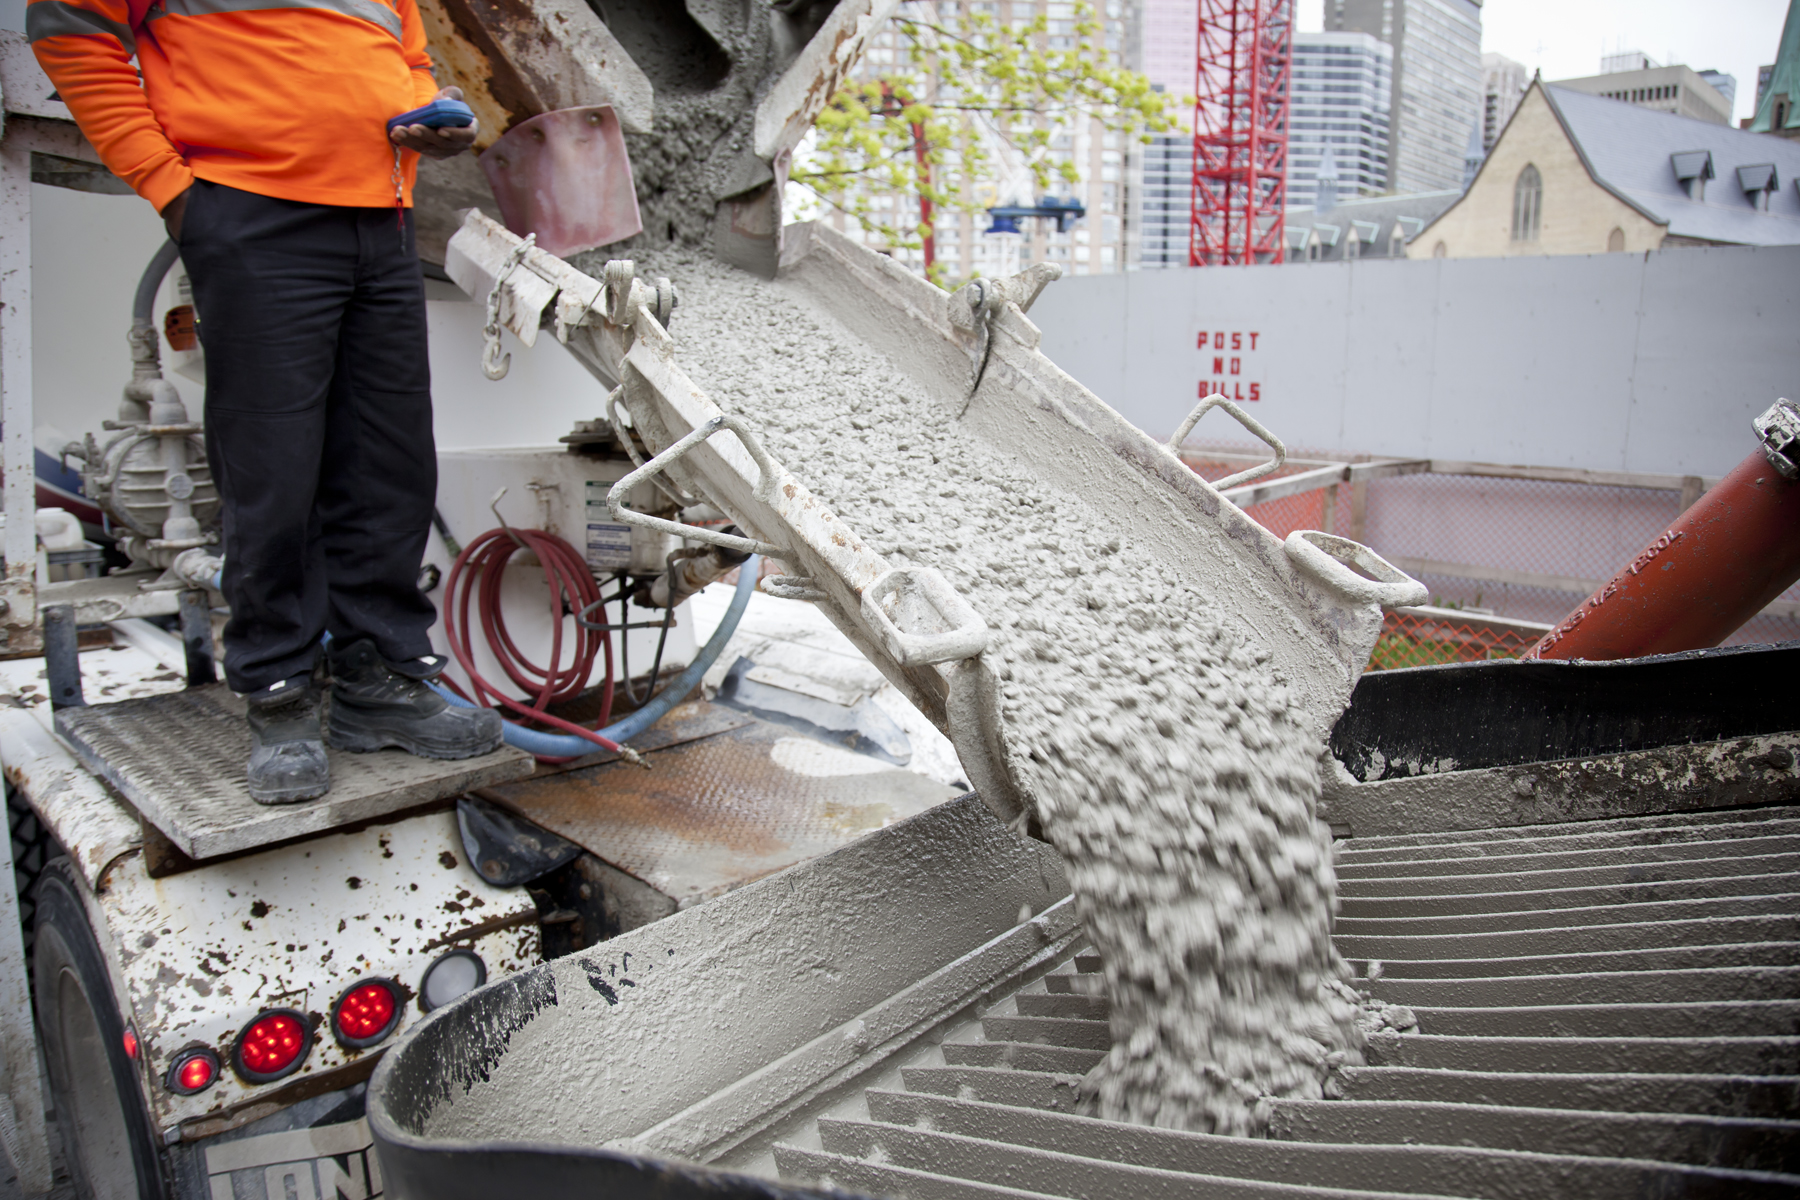 Concrete pouring out of the mixer for a job